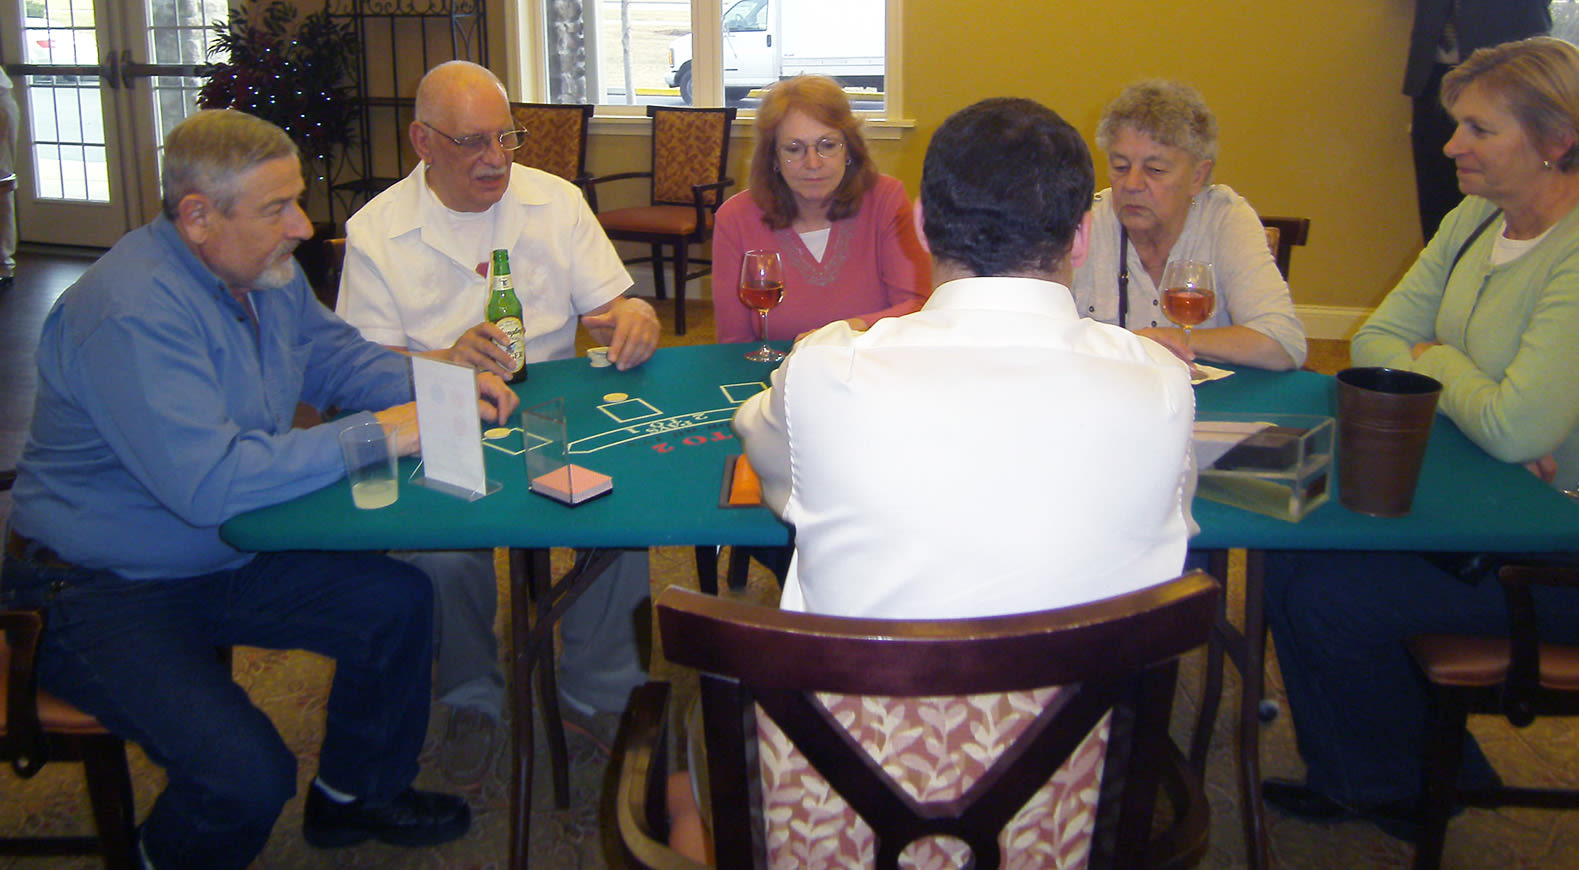 Seniors playing poker at Heritage Green Assisted Living and Memory Care in Lynchburg, Virginia